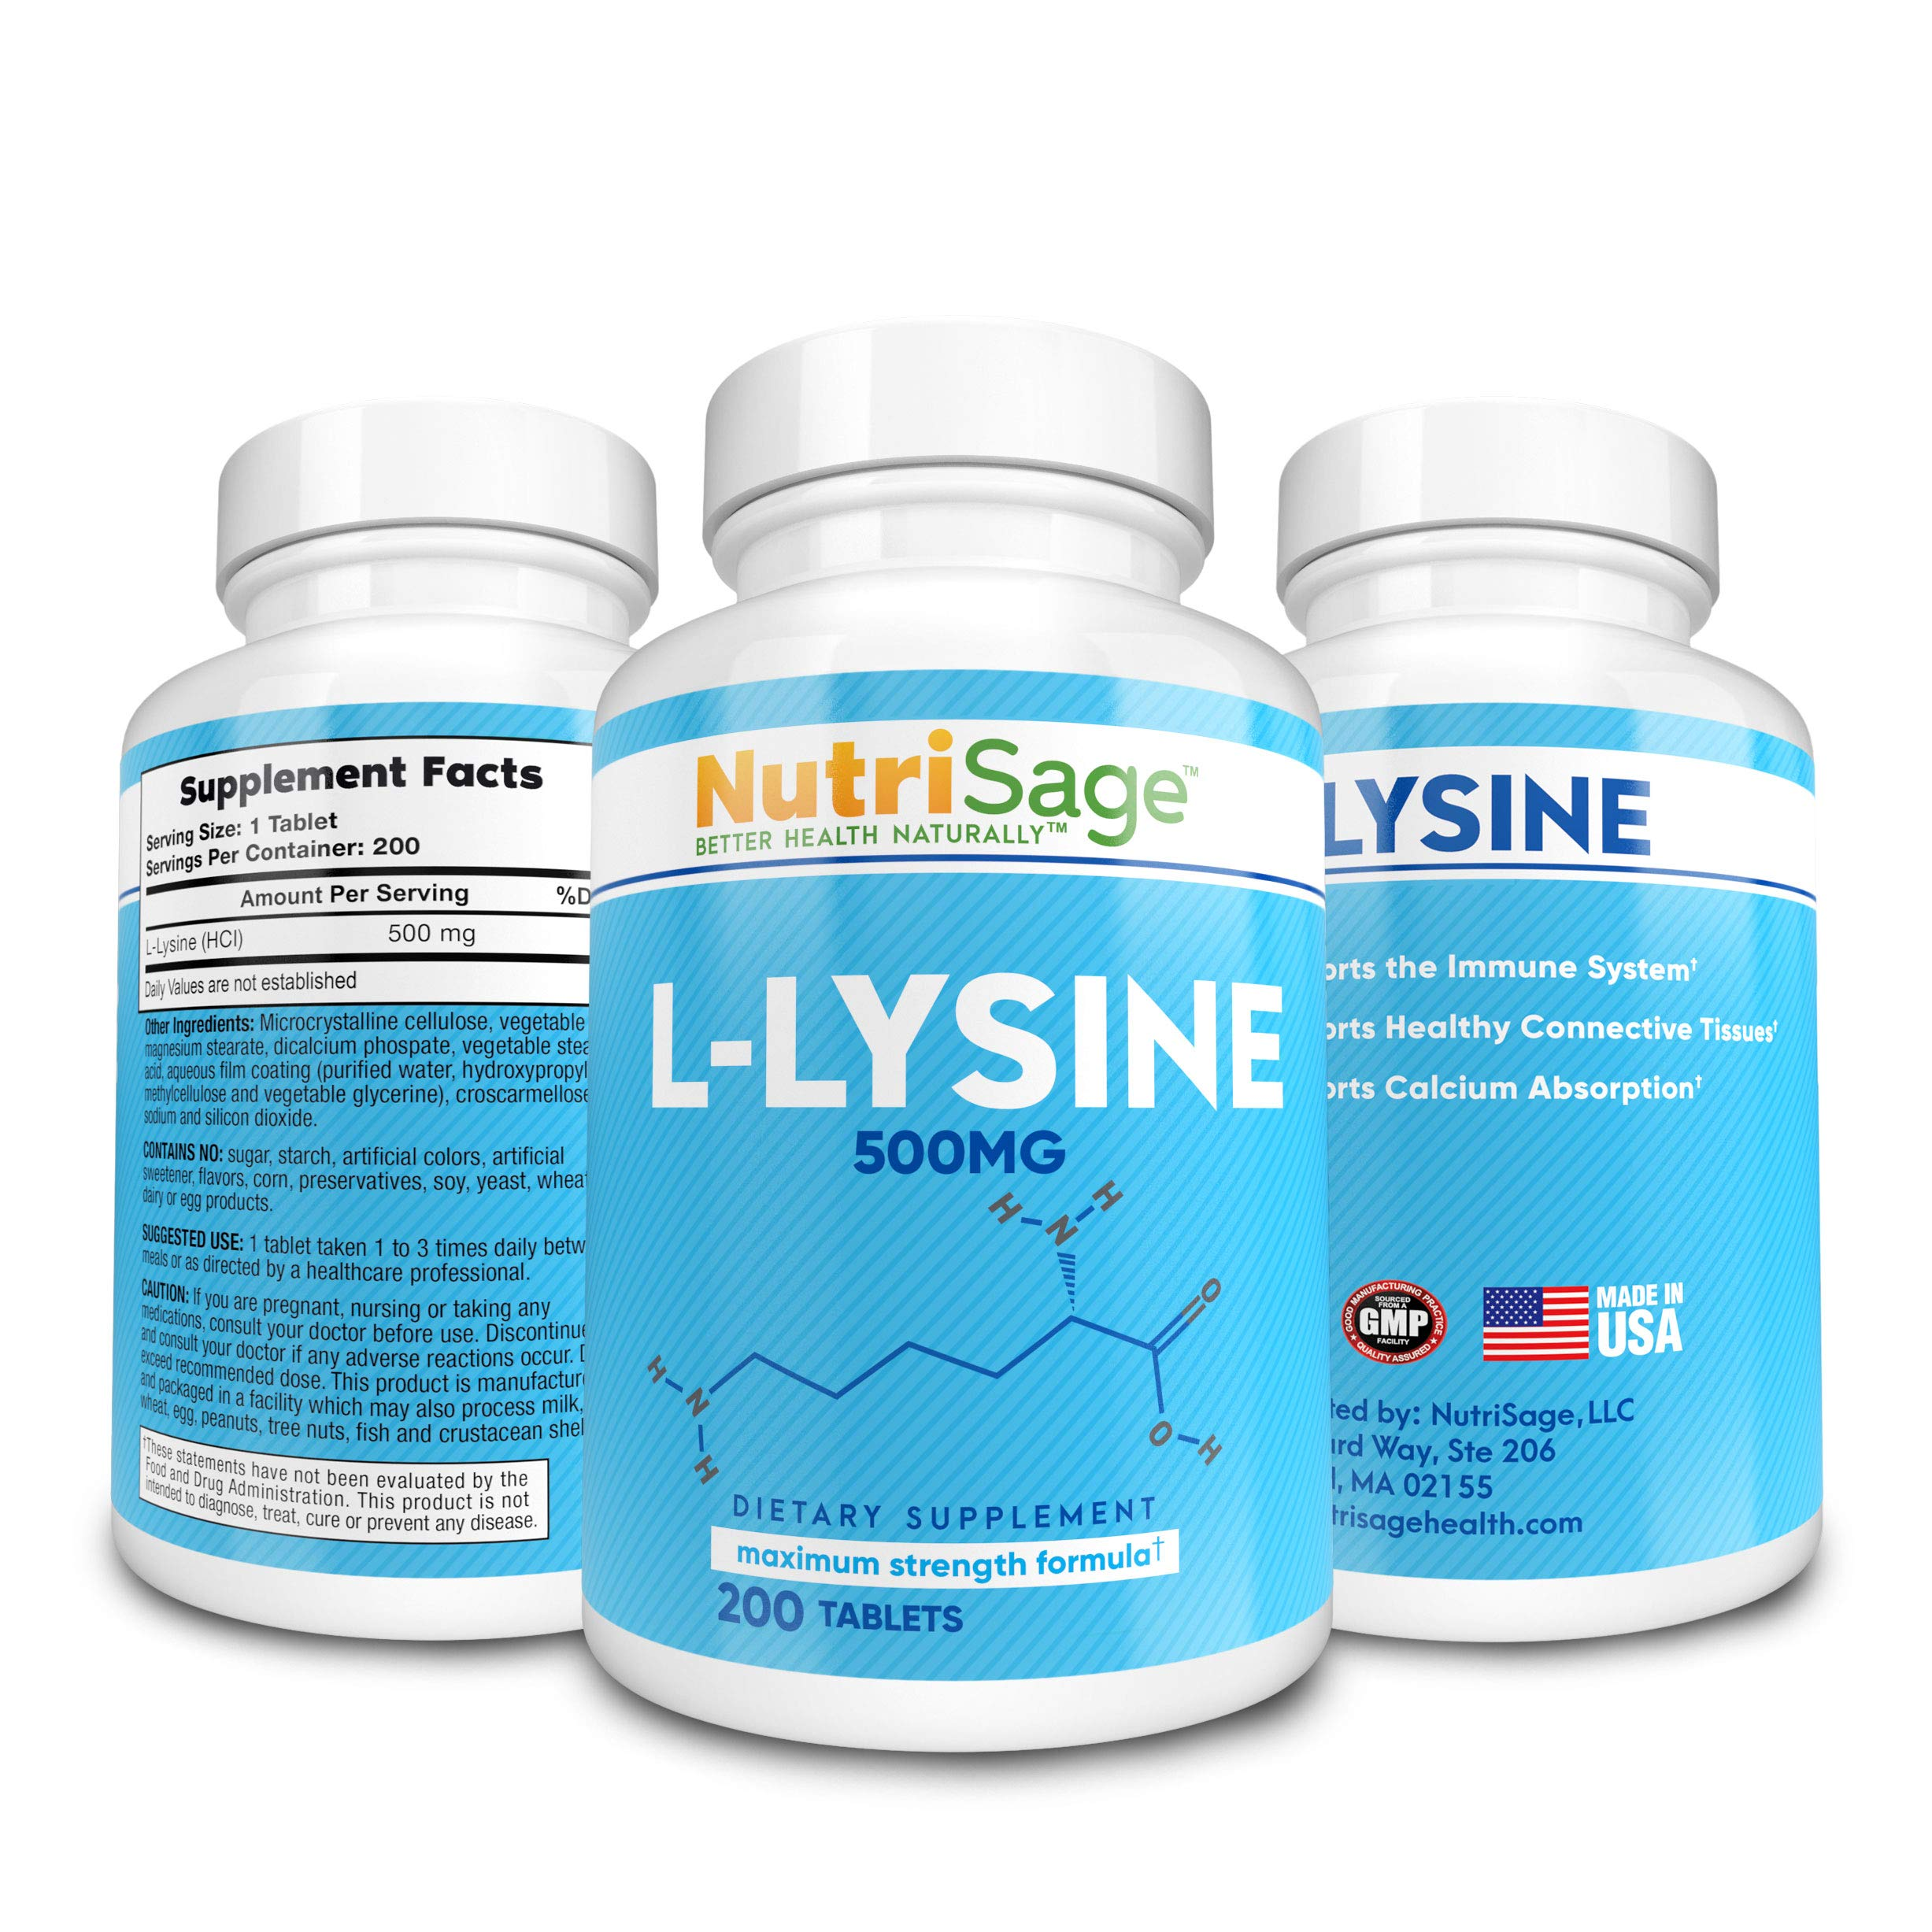 Premium Super L Lysine - 500mg Amino Acid Tablets For Cold Sore Care, Shingles, Immune Support & More - 200 Count Per Bottle by NutriSage